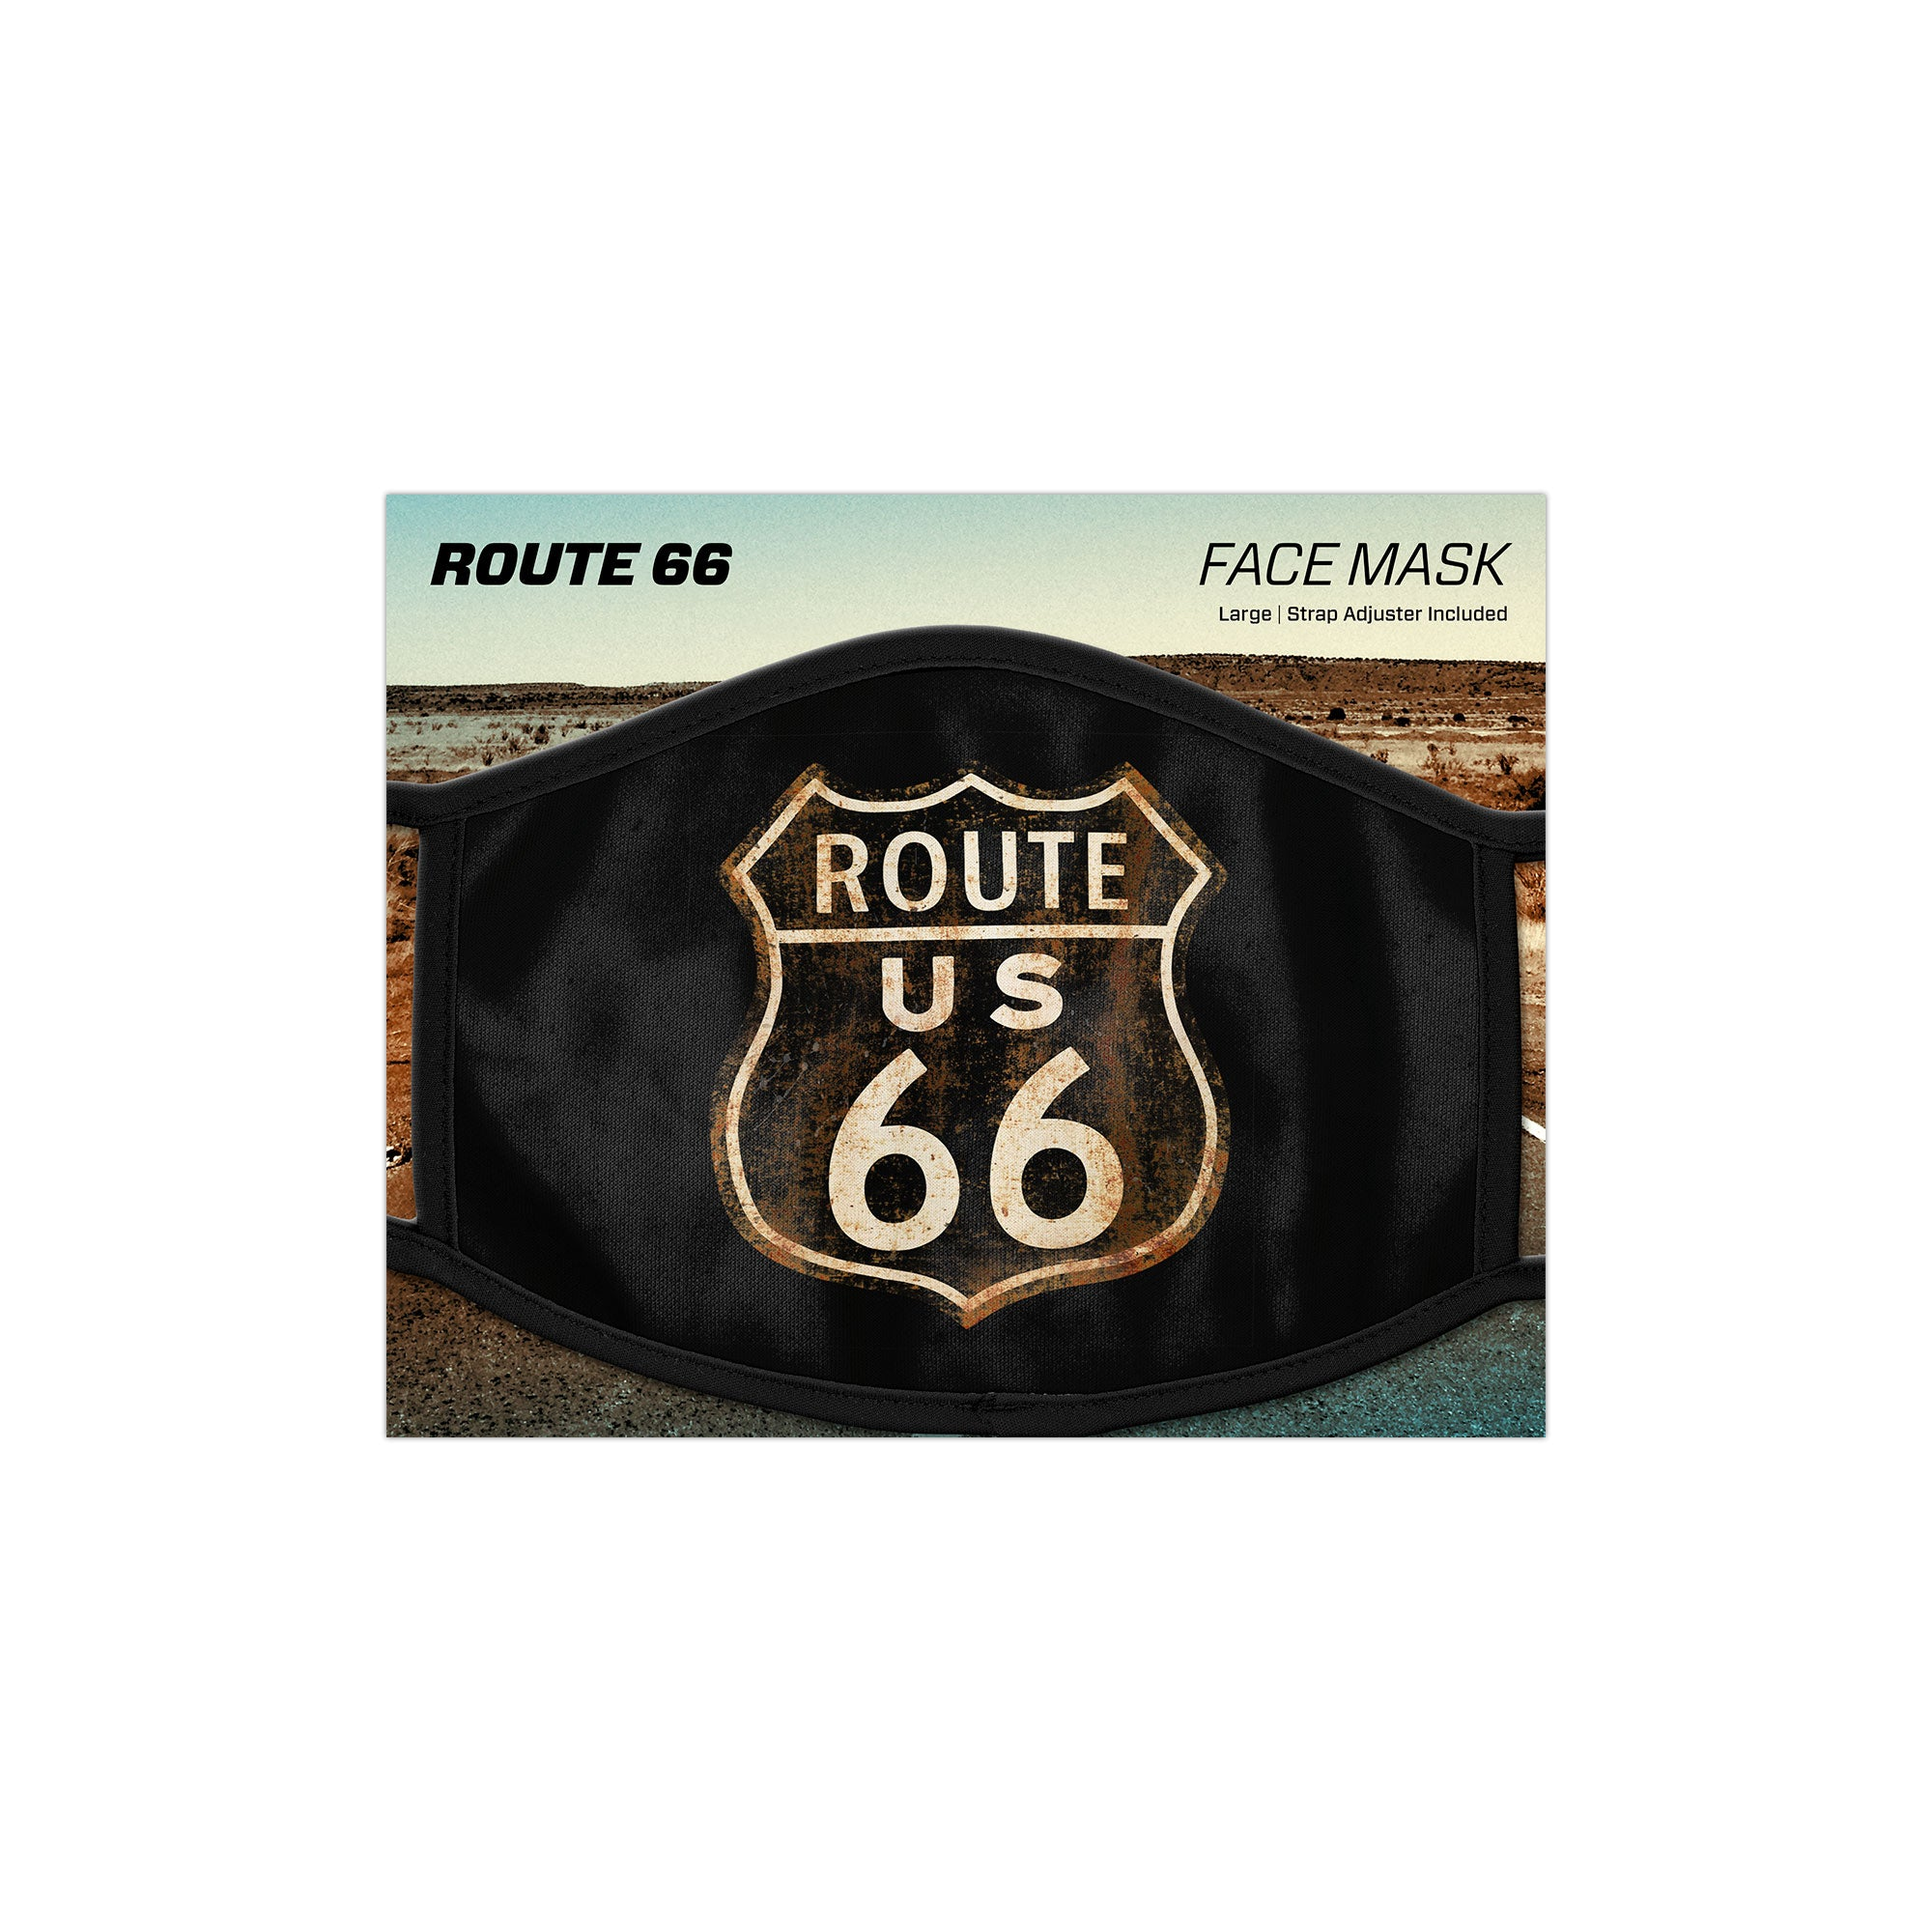 Route 66 Face Mask